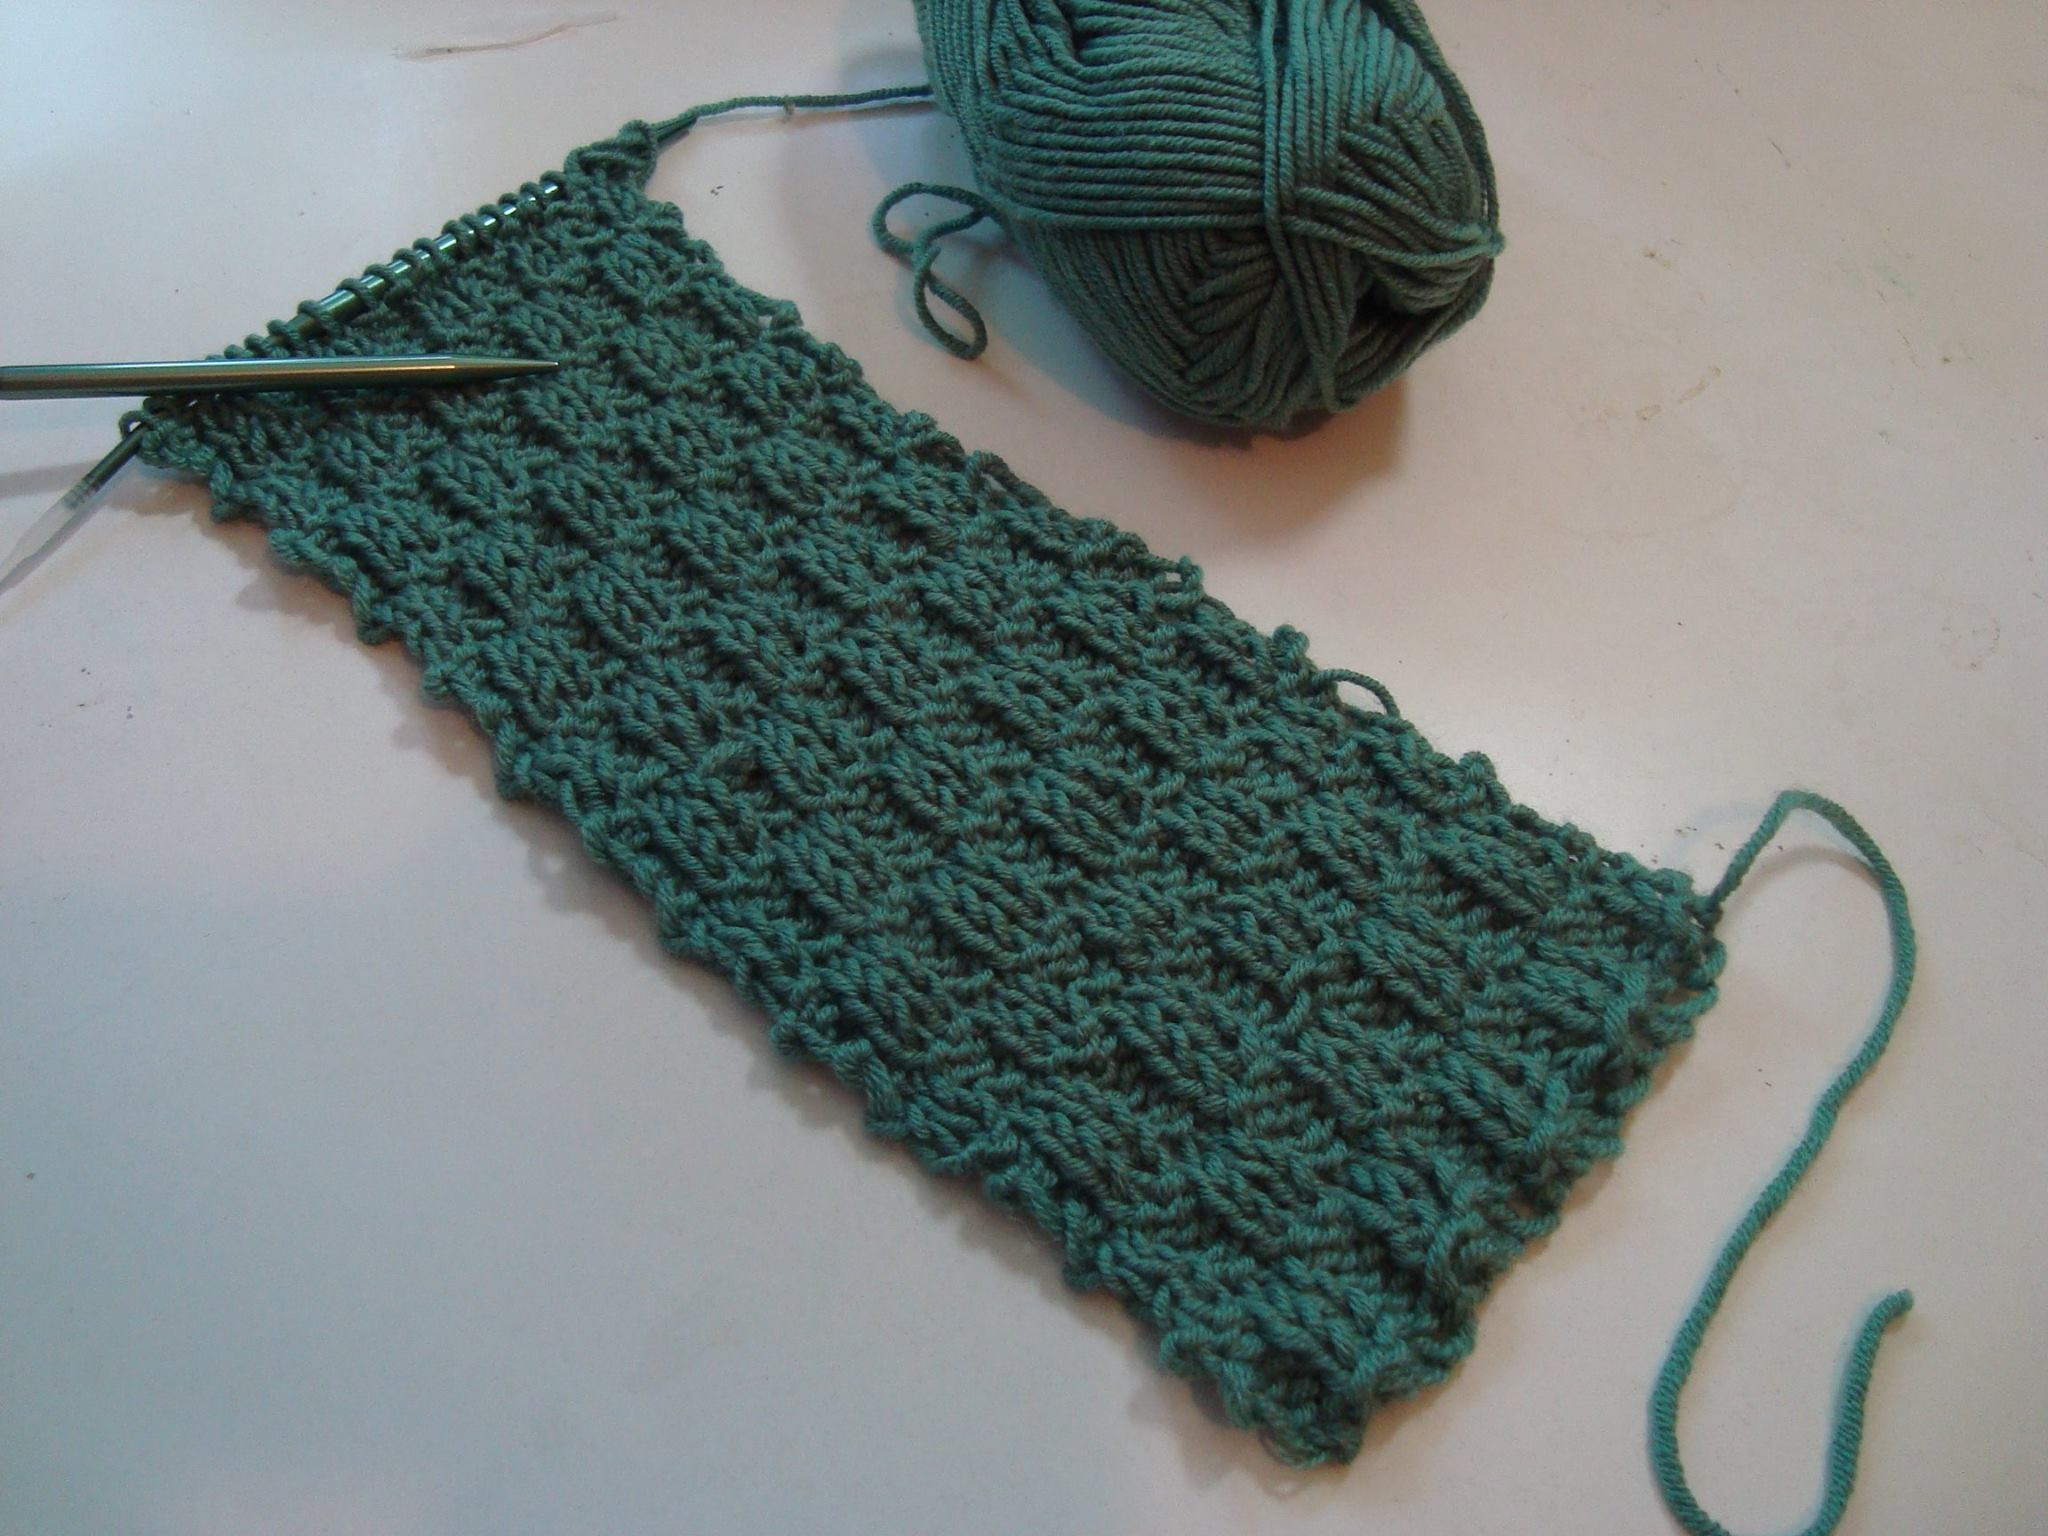 Scarf Patterns Knitting Beginner The Best Beginner Knitting Pattern Crochet Knitting Over The